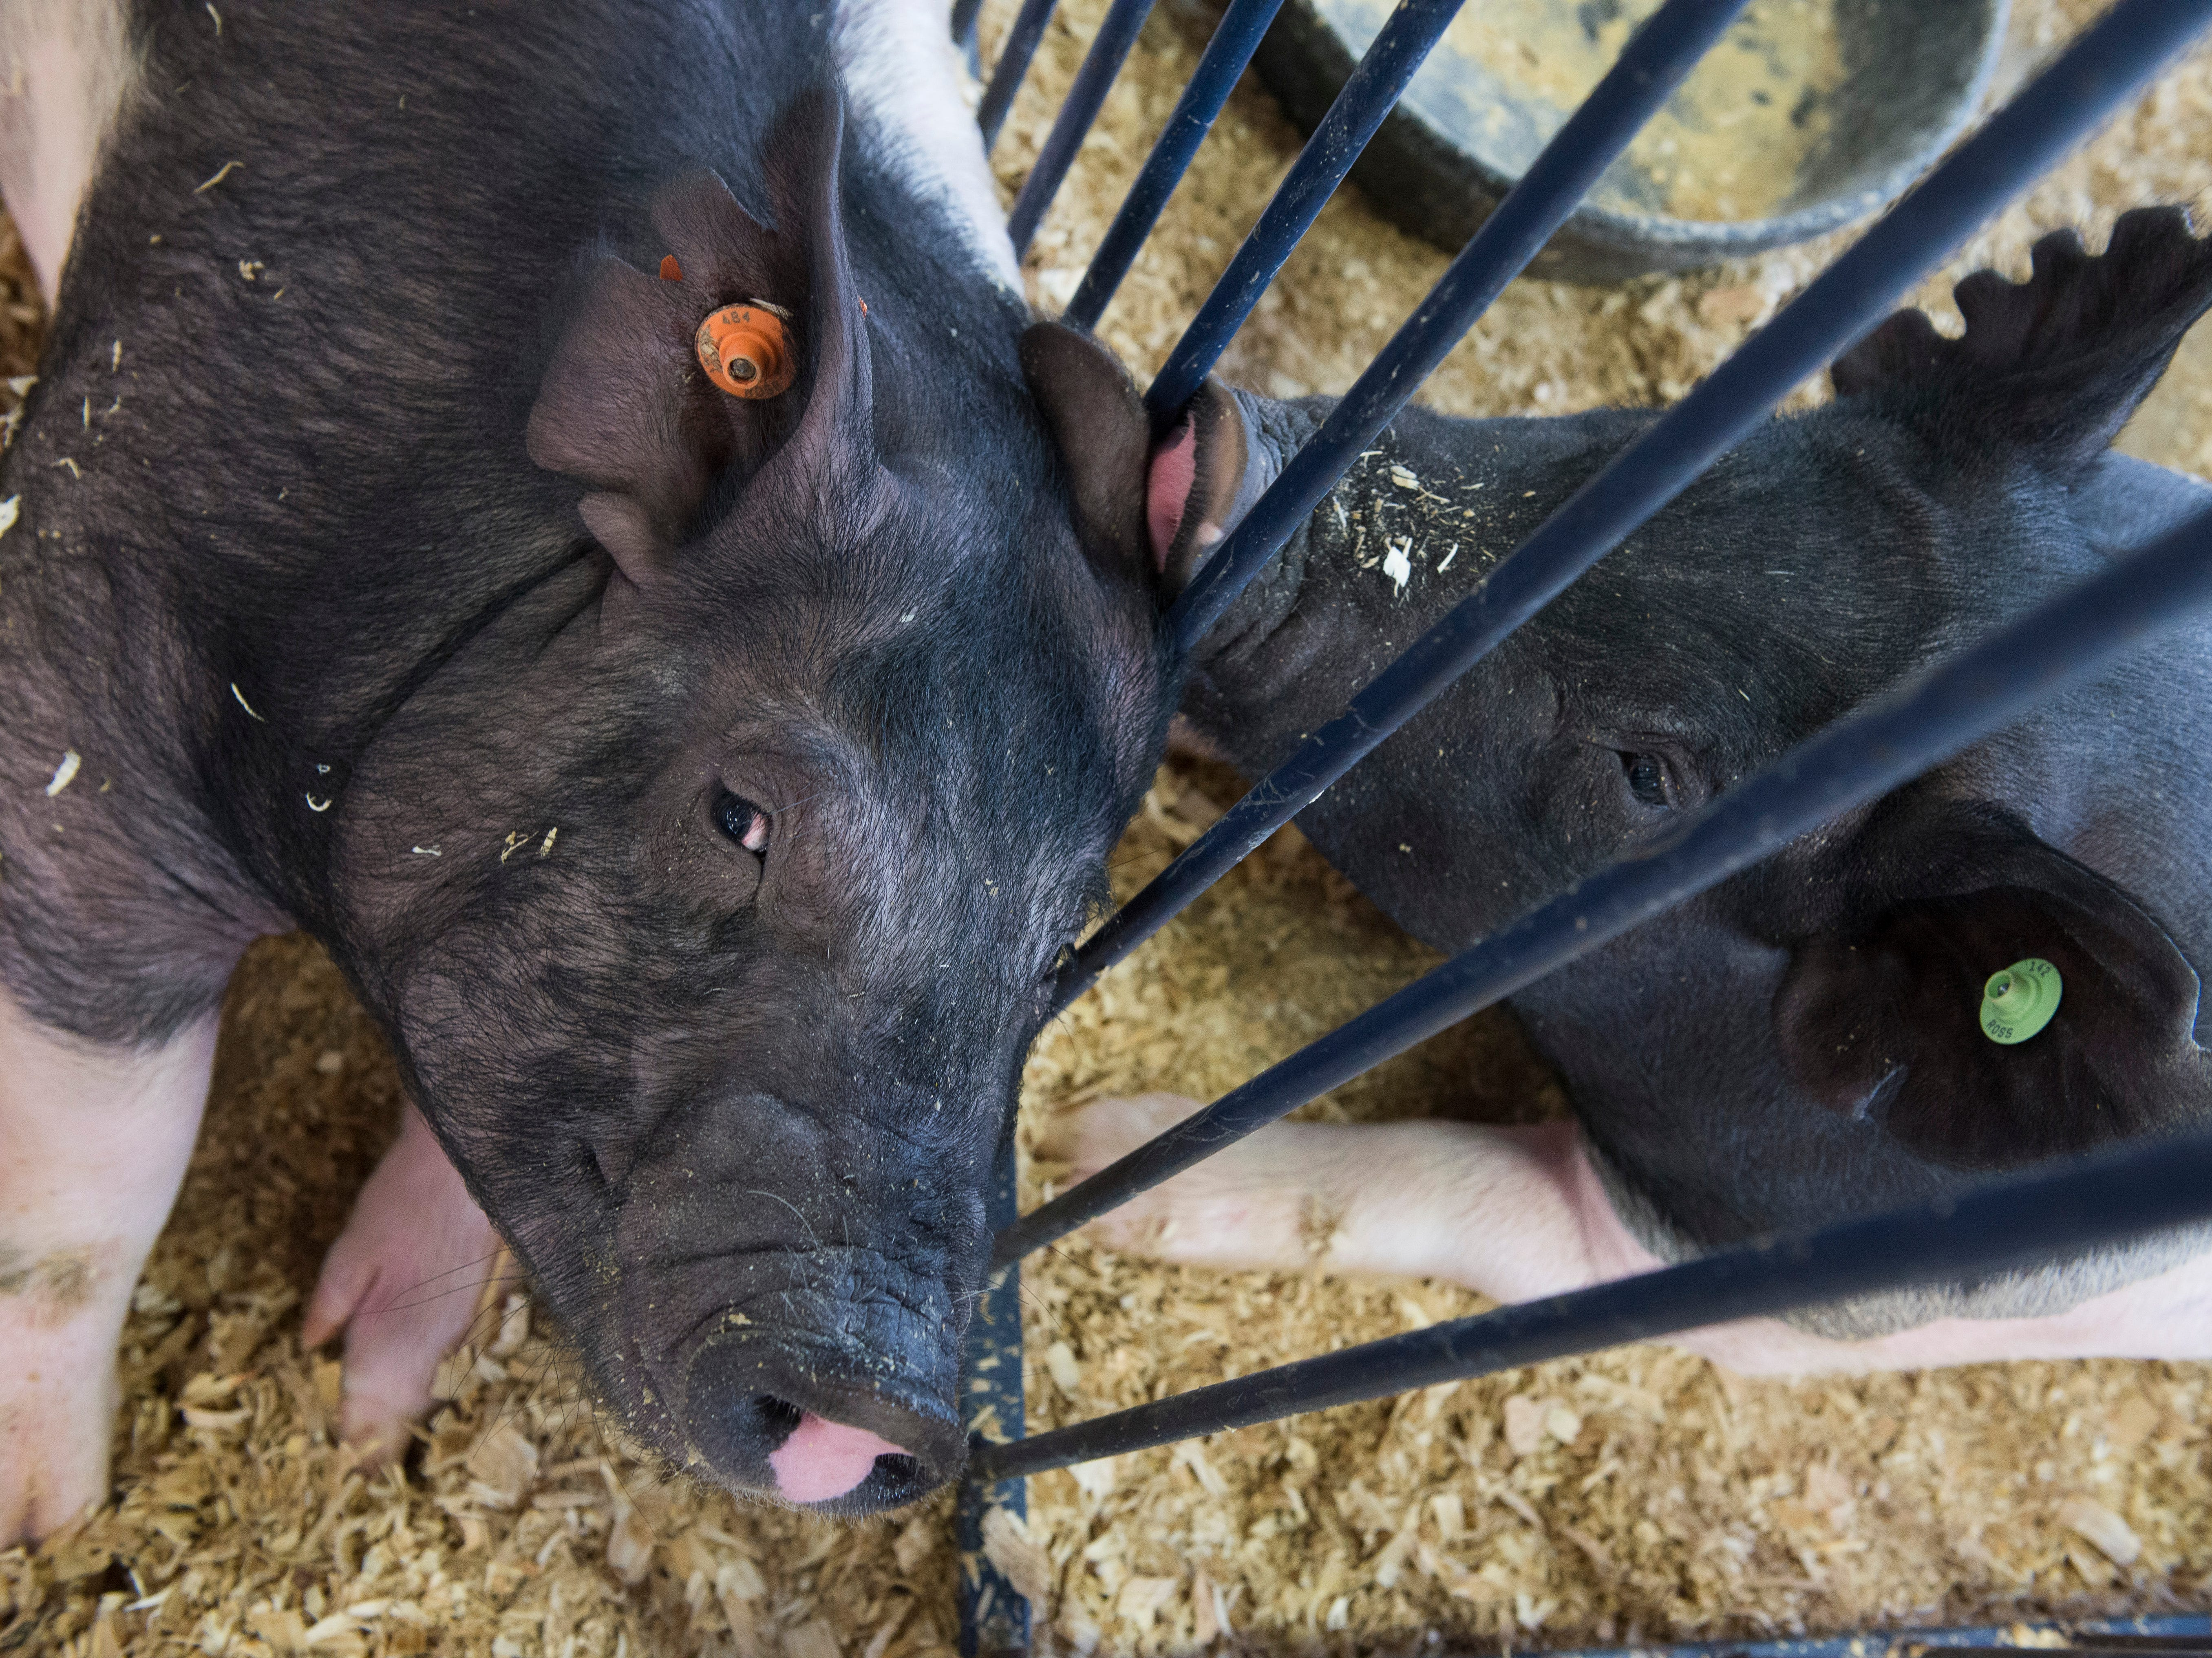 Hogs nuzzle in their enclosures during the Junior Fair Swine Sale at the Ross County Fair on August 9, 2018 in Chillicothe, Ohio.